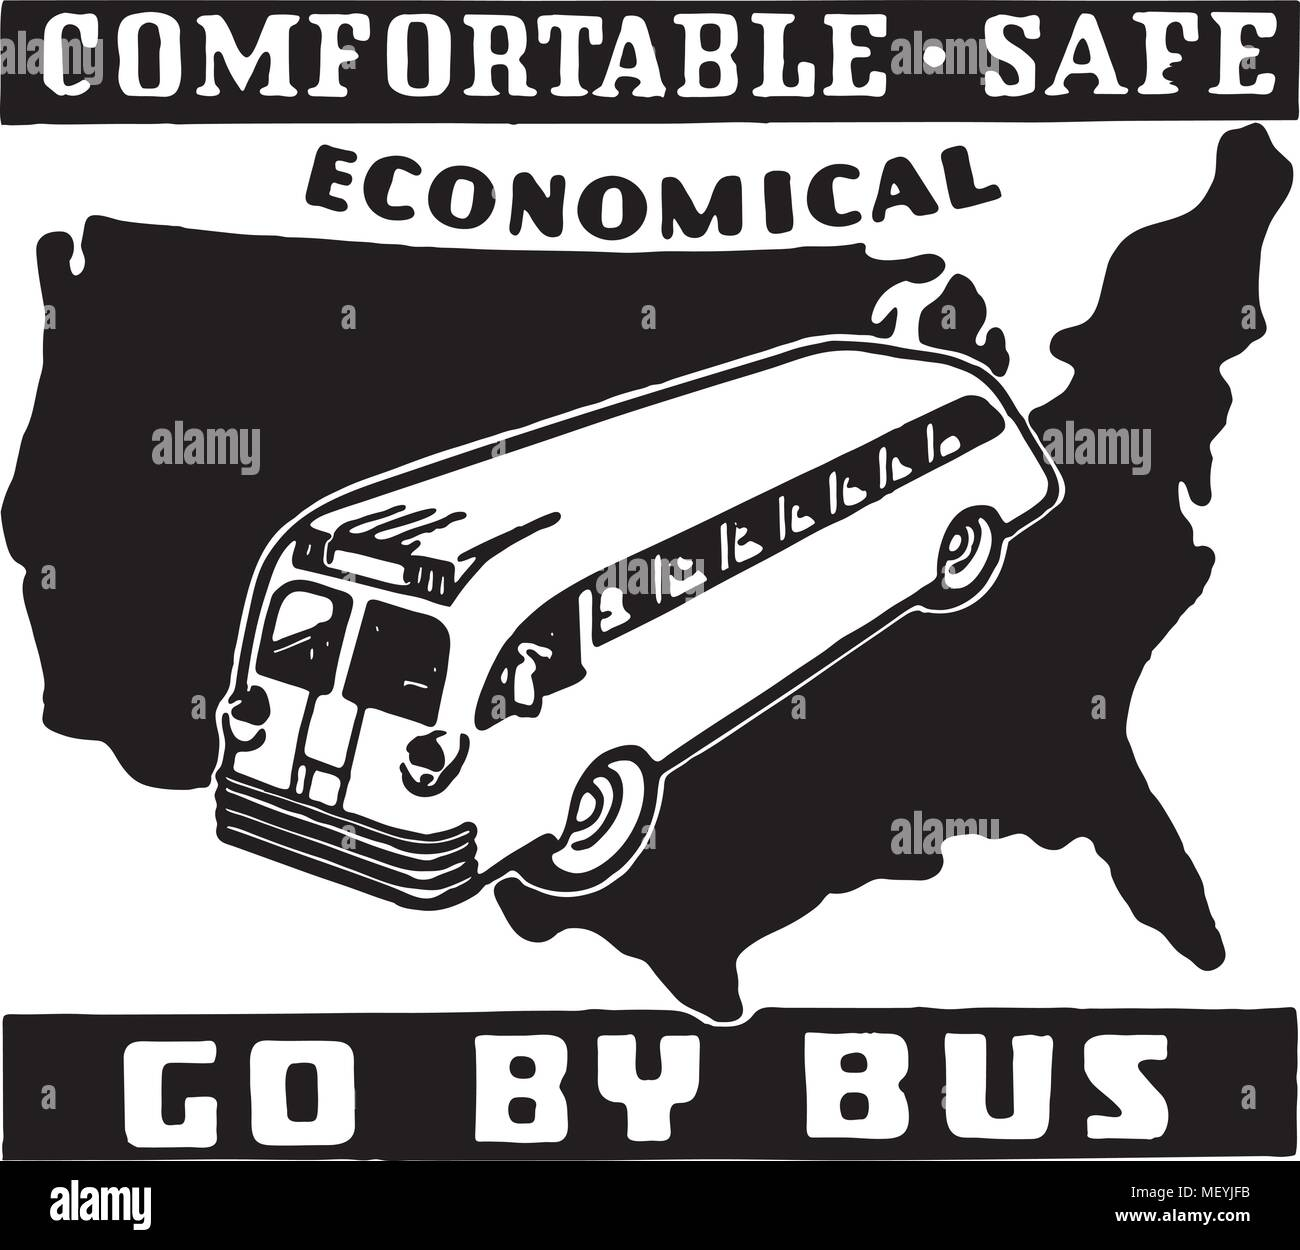 Go By Bus 2 - Retro Ad Art Banner - Stock Vector